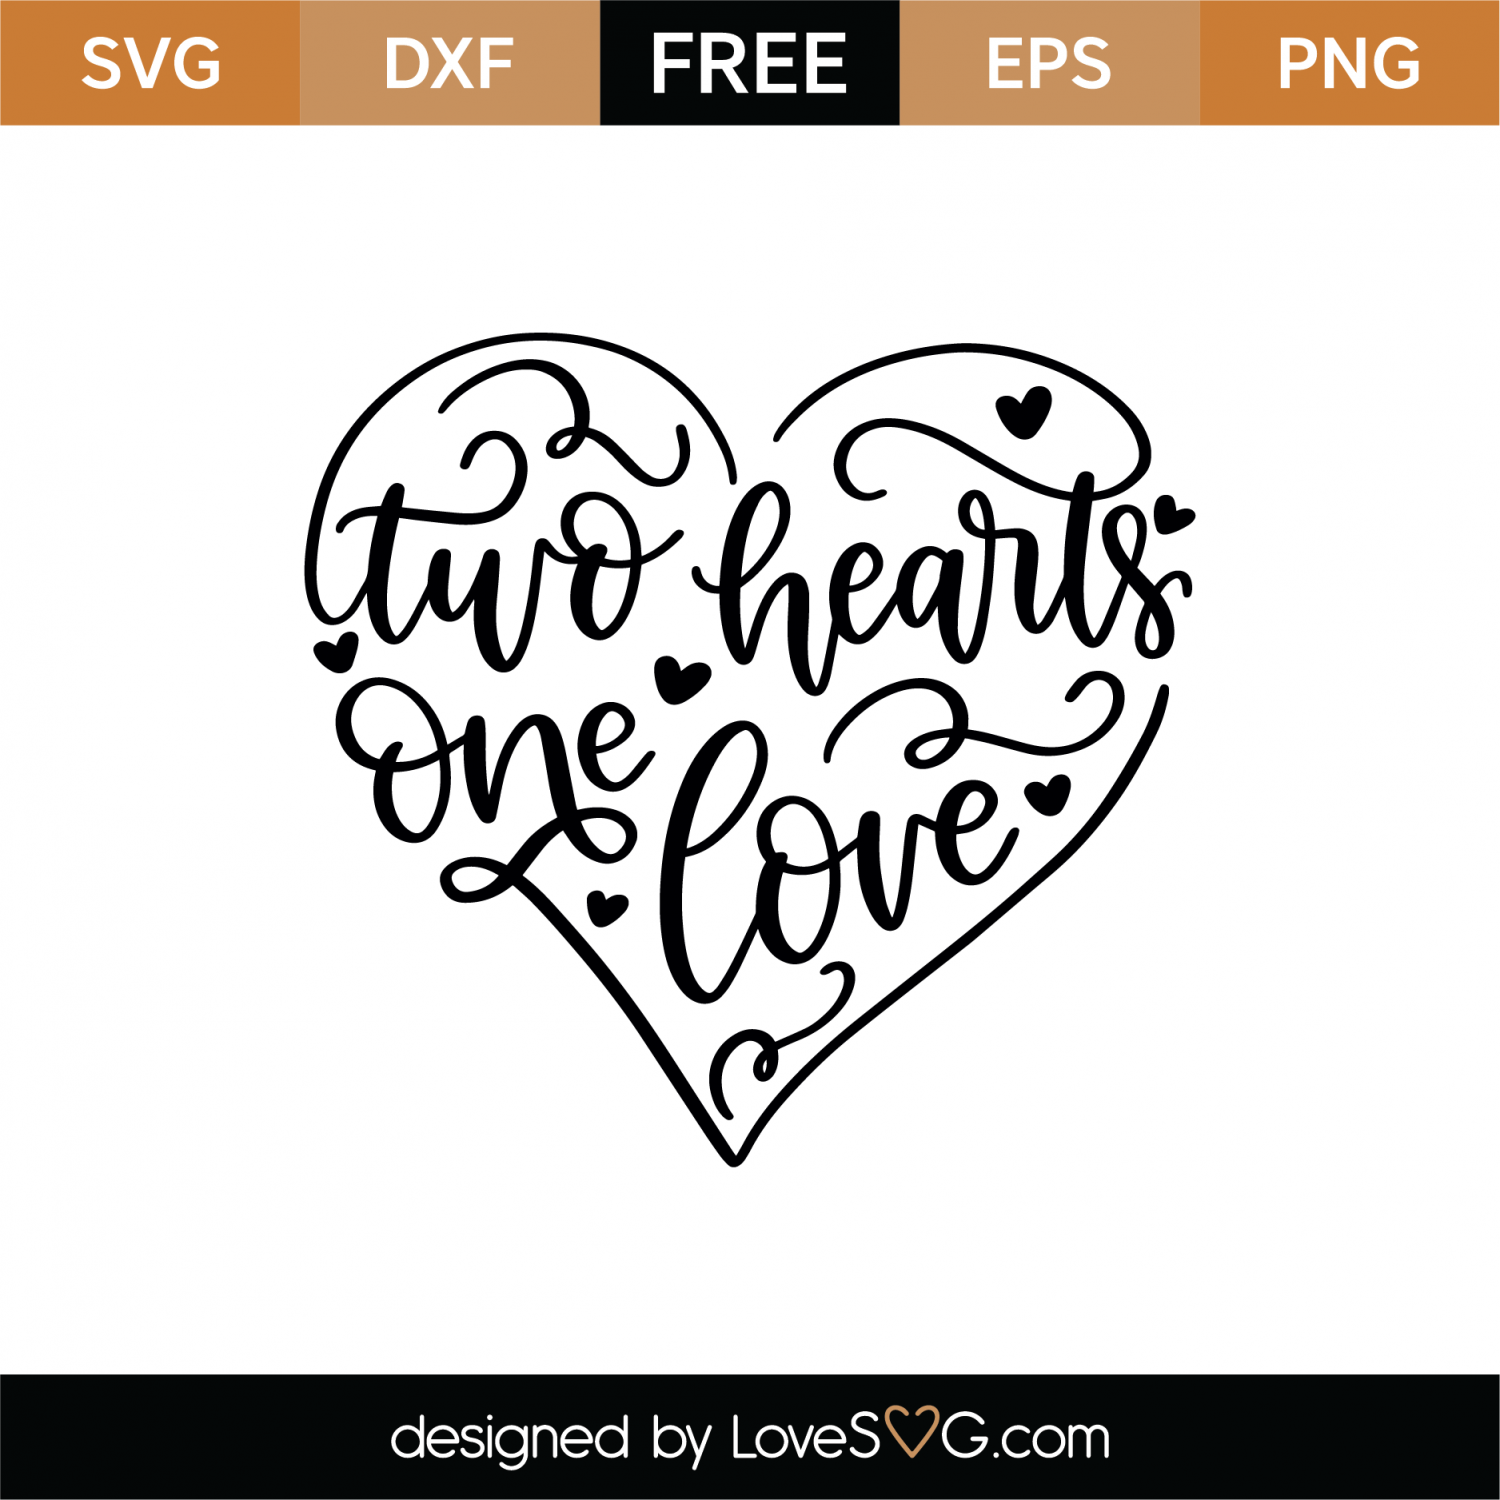 Download Free Two Hearts One Love SVG Cut File | Lovesvg.com